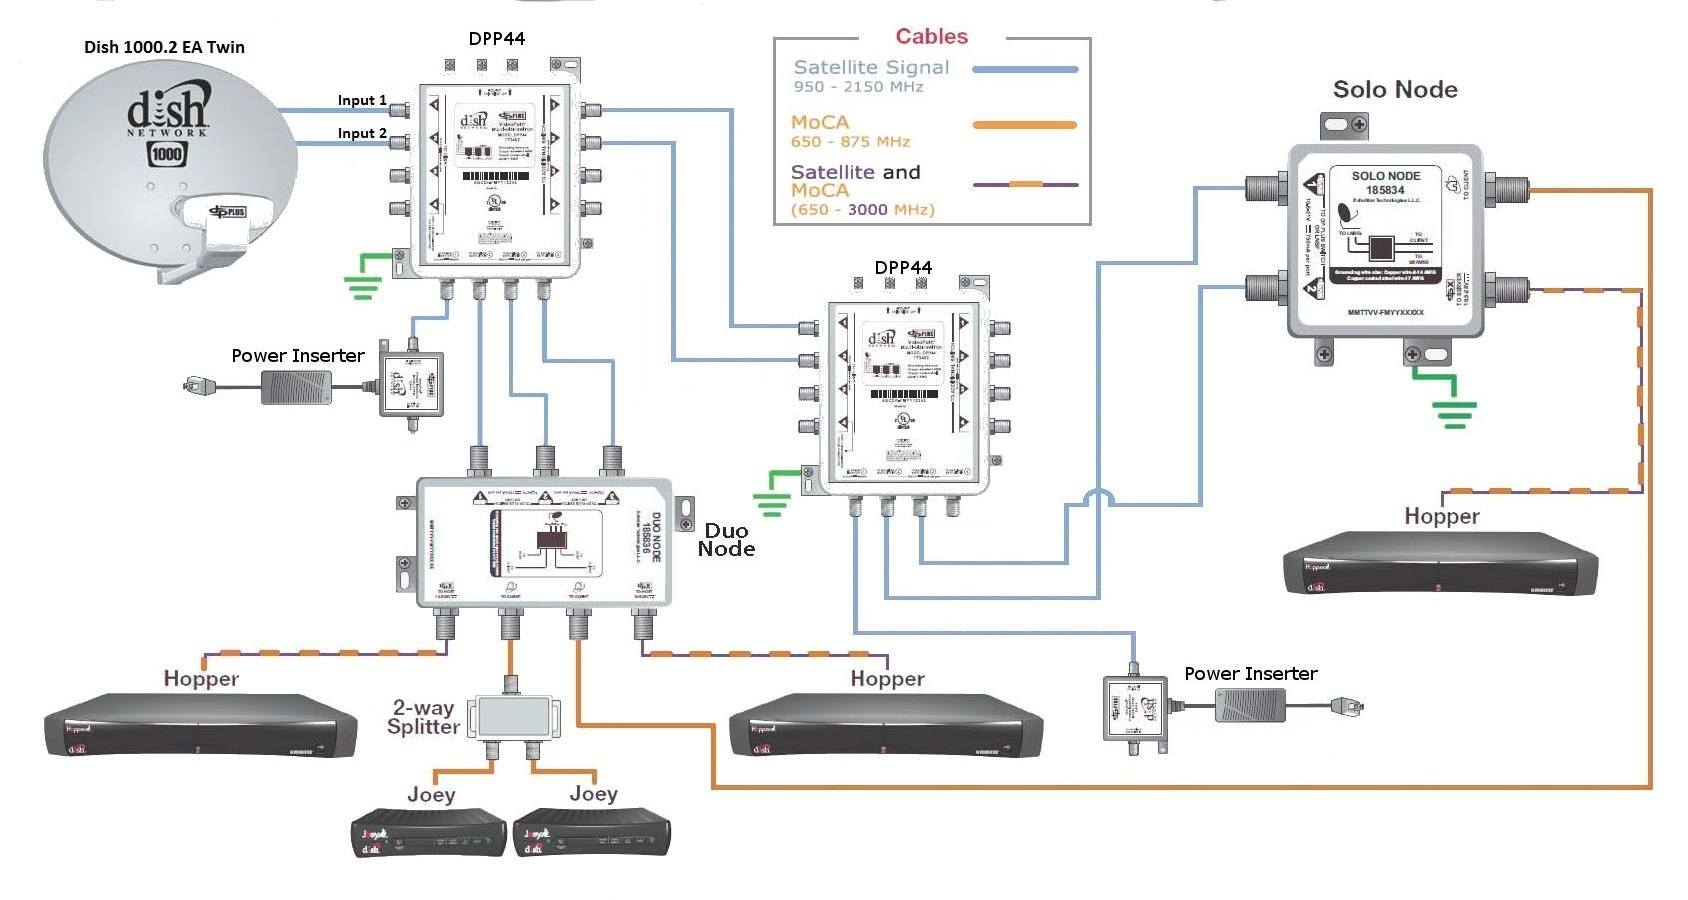 hopper wiring diagram dish hopper wiring \u2022 wiring diagrams j dish network 322 wiring diagram at edmiracle.co